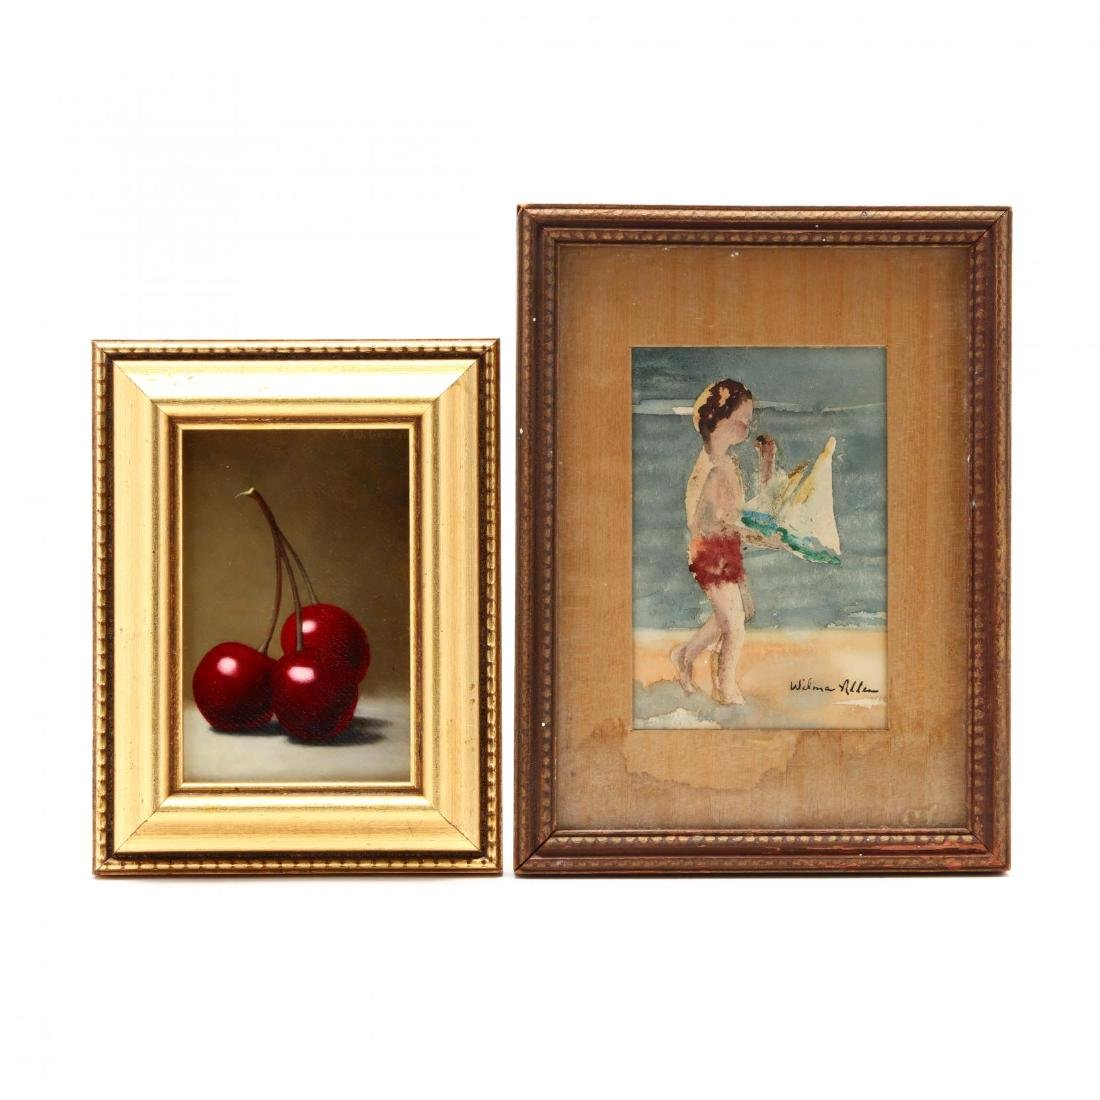 Two Contemporary Miniature Paintings - Russell W.